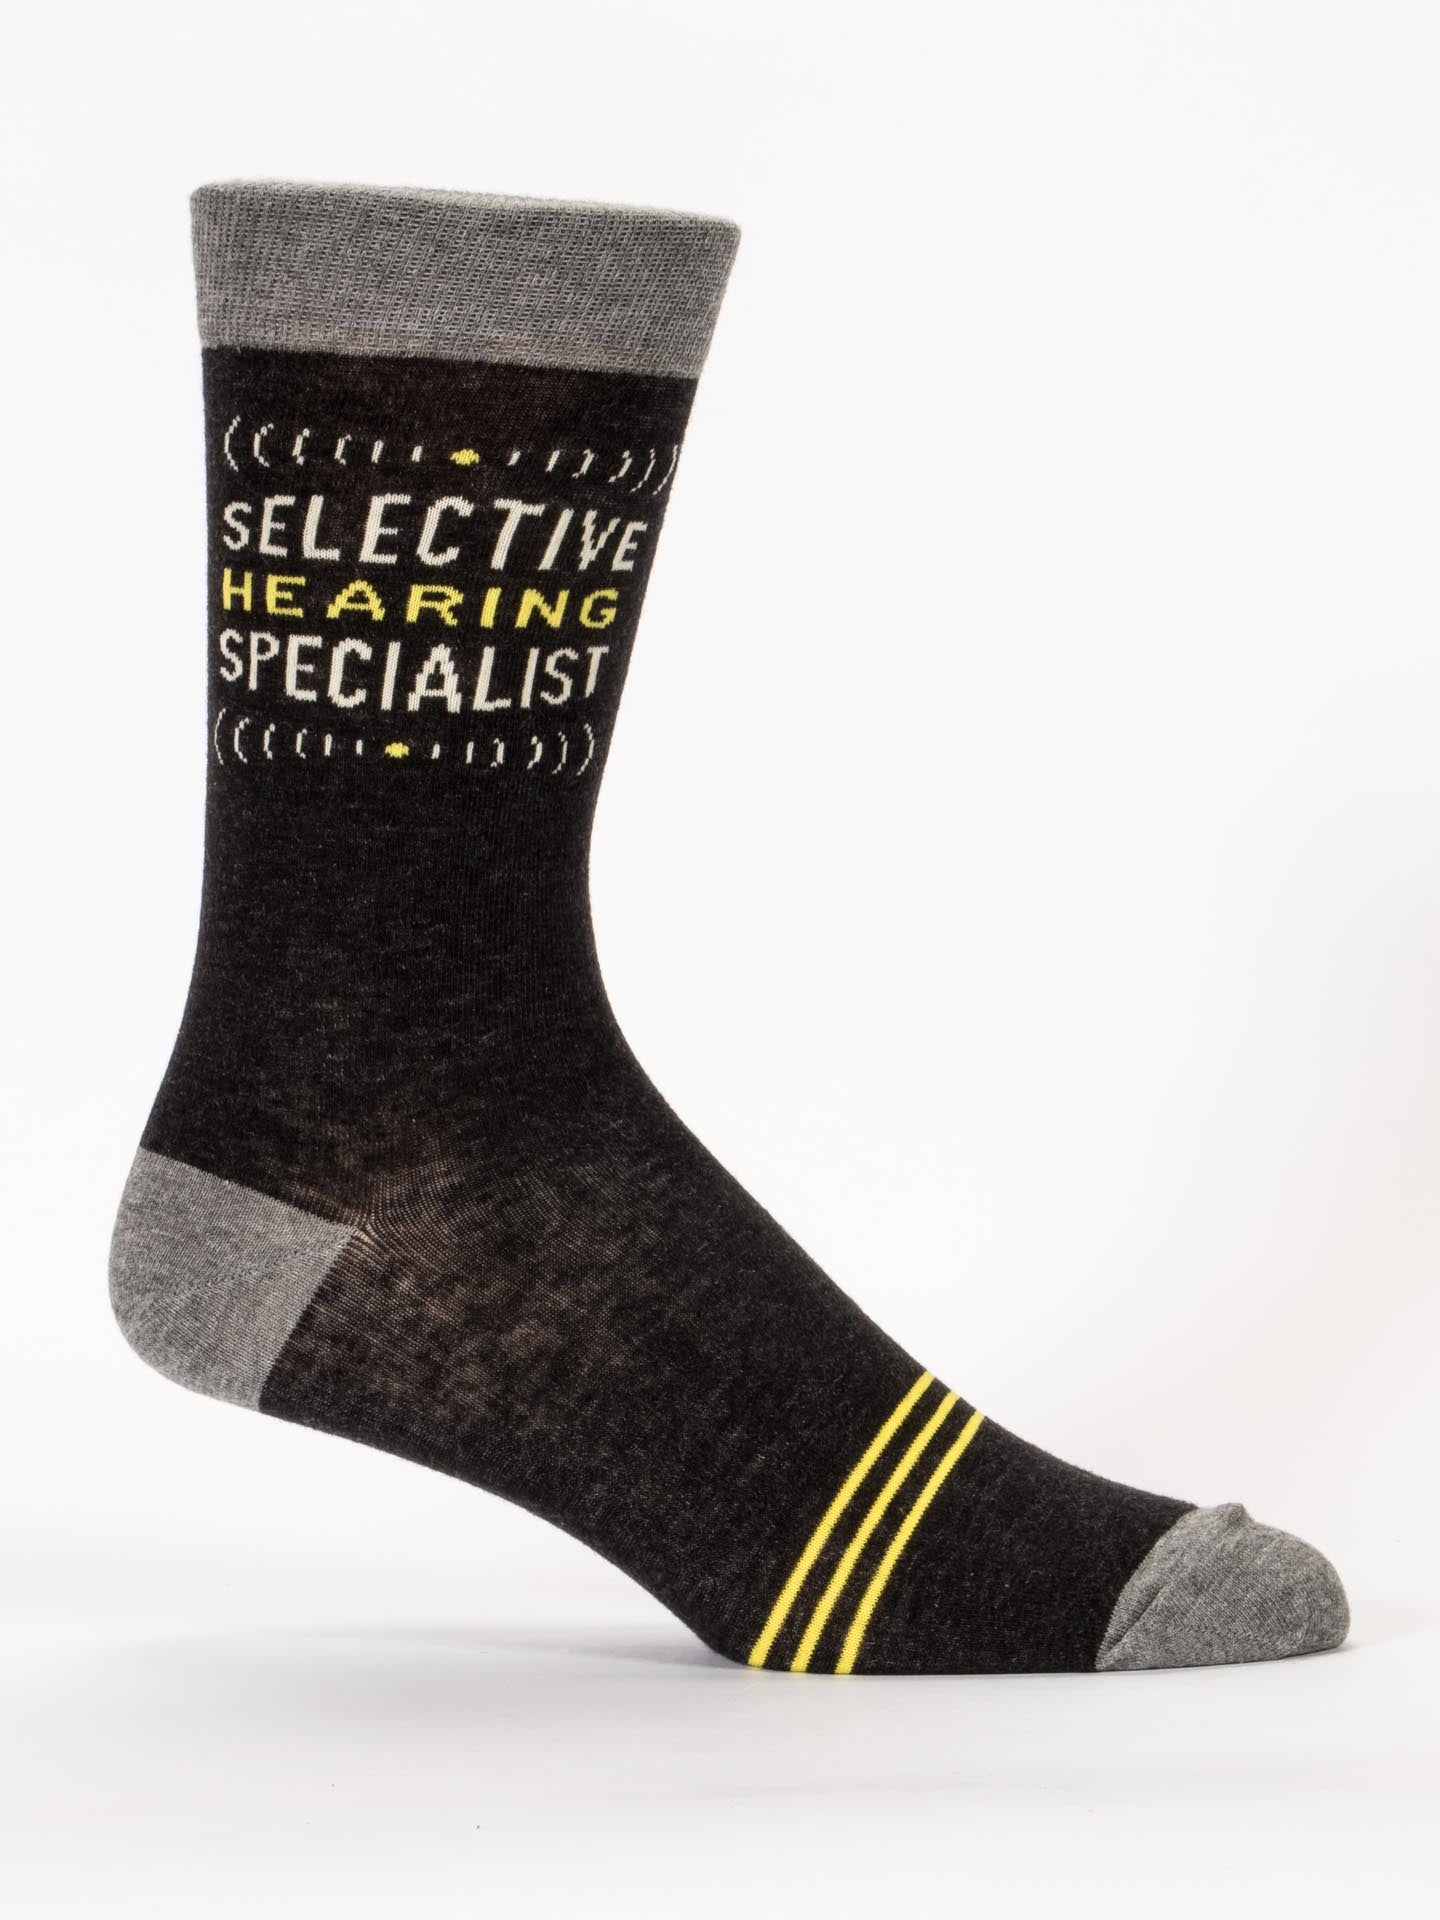 Blue Q - Men's Socks - Selective Hearing